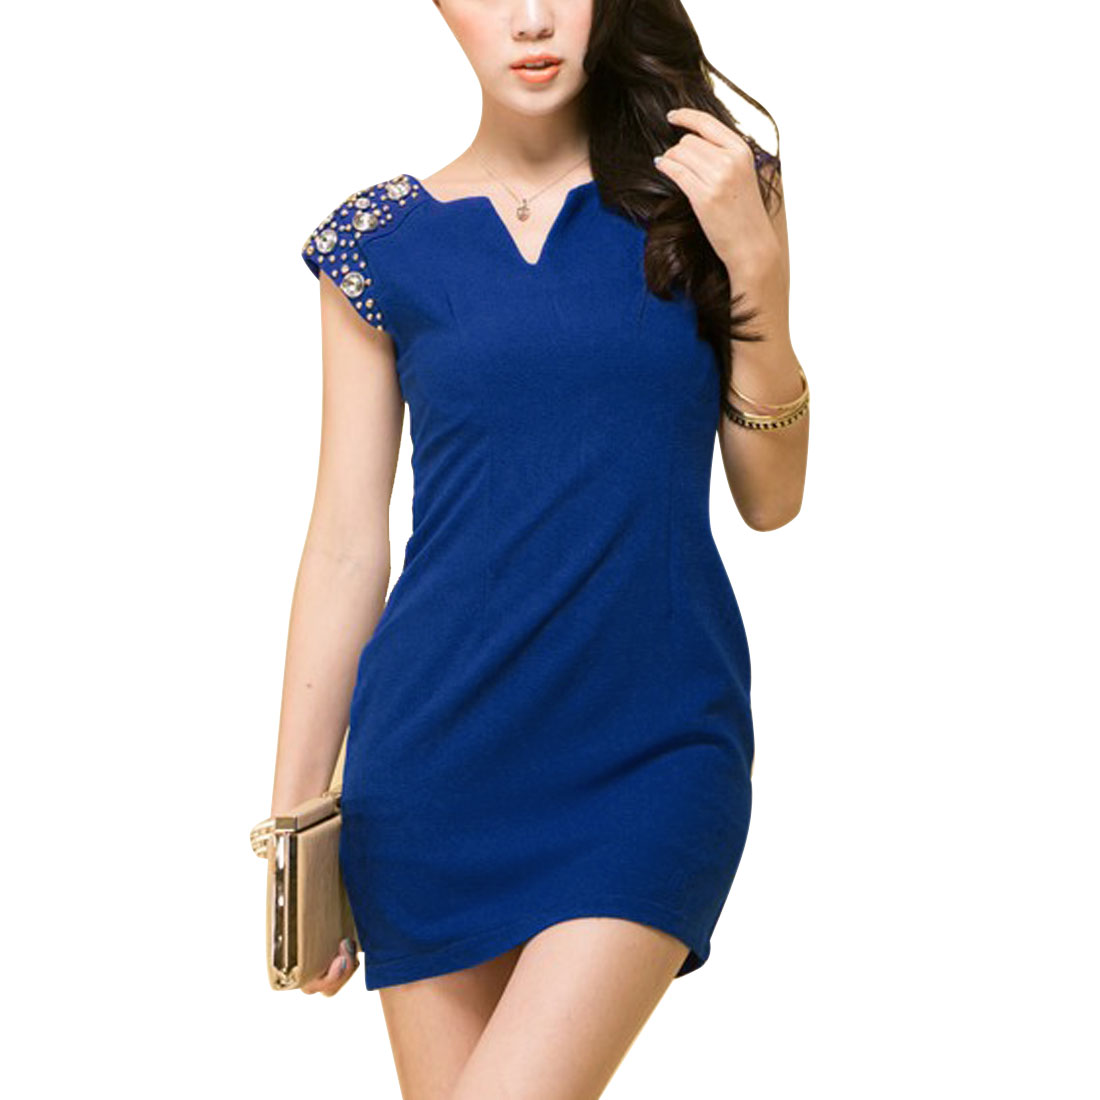 Ladies Split Neck Rhinestones Decor Shoulder Royalblue Mini Dress XS